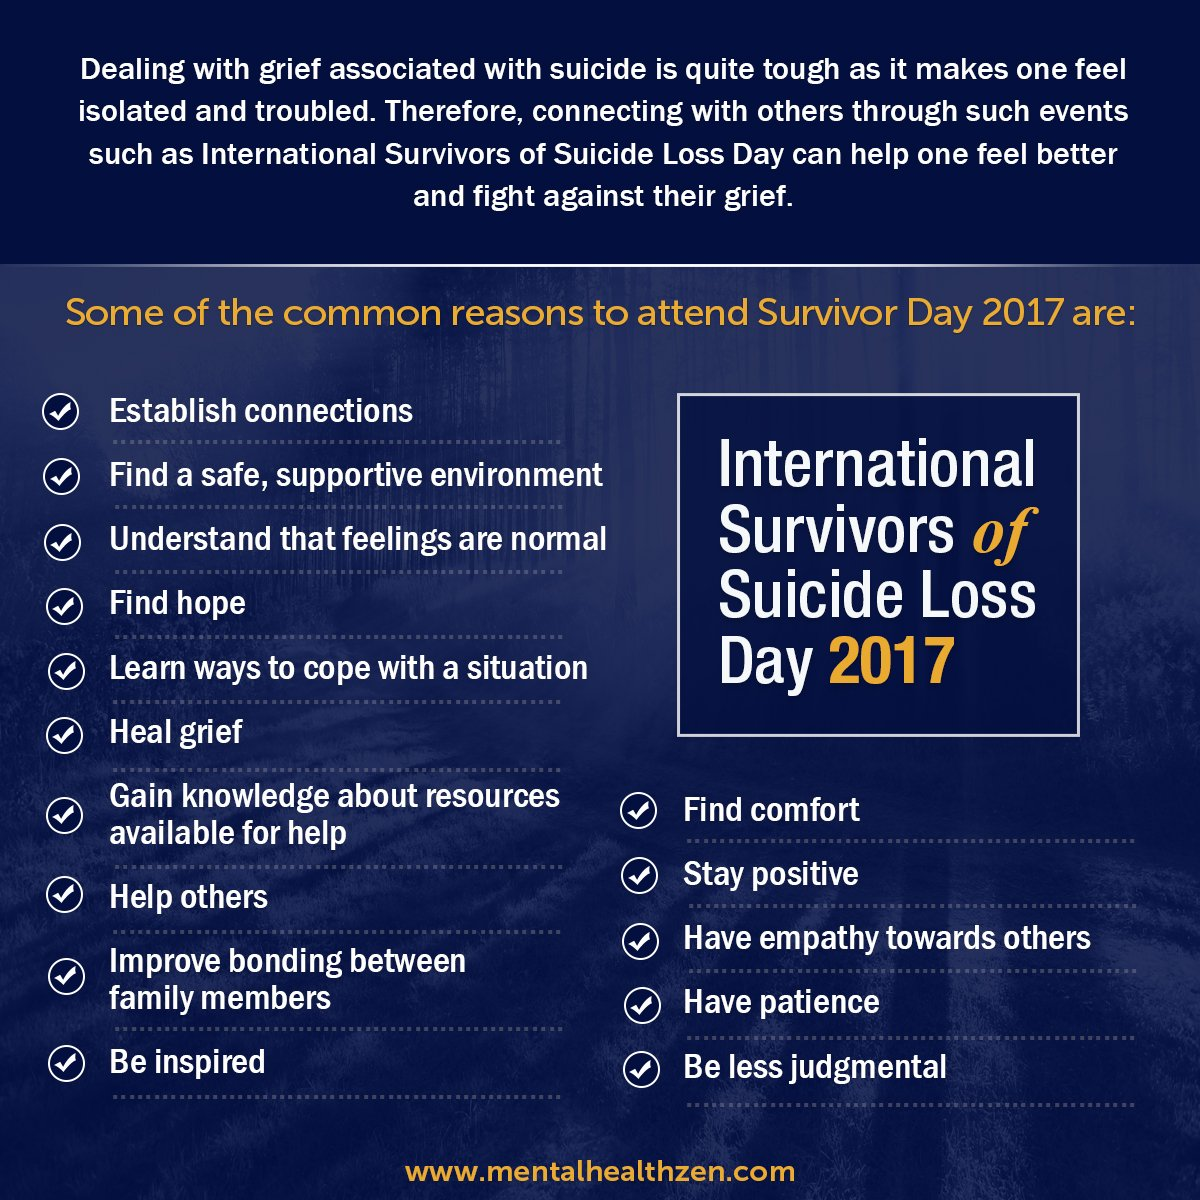 Some of the common reasons to attend #survivorday.    http:// bit.ly/2ipgqC4  &nbsp;    #FridayFeeling #Friyay #MentalHealth #SuicidePrevention @800273TALK @DrDeniseMD @ConquerWorry #Depression @TalkToMe #Quoteoftheday @TheMightySite #FlashbackFriday @talkspace #Anxiety @NAMIDekalb #Health<br>http://pic.twitter.com/KG0Va0GRxC